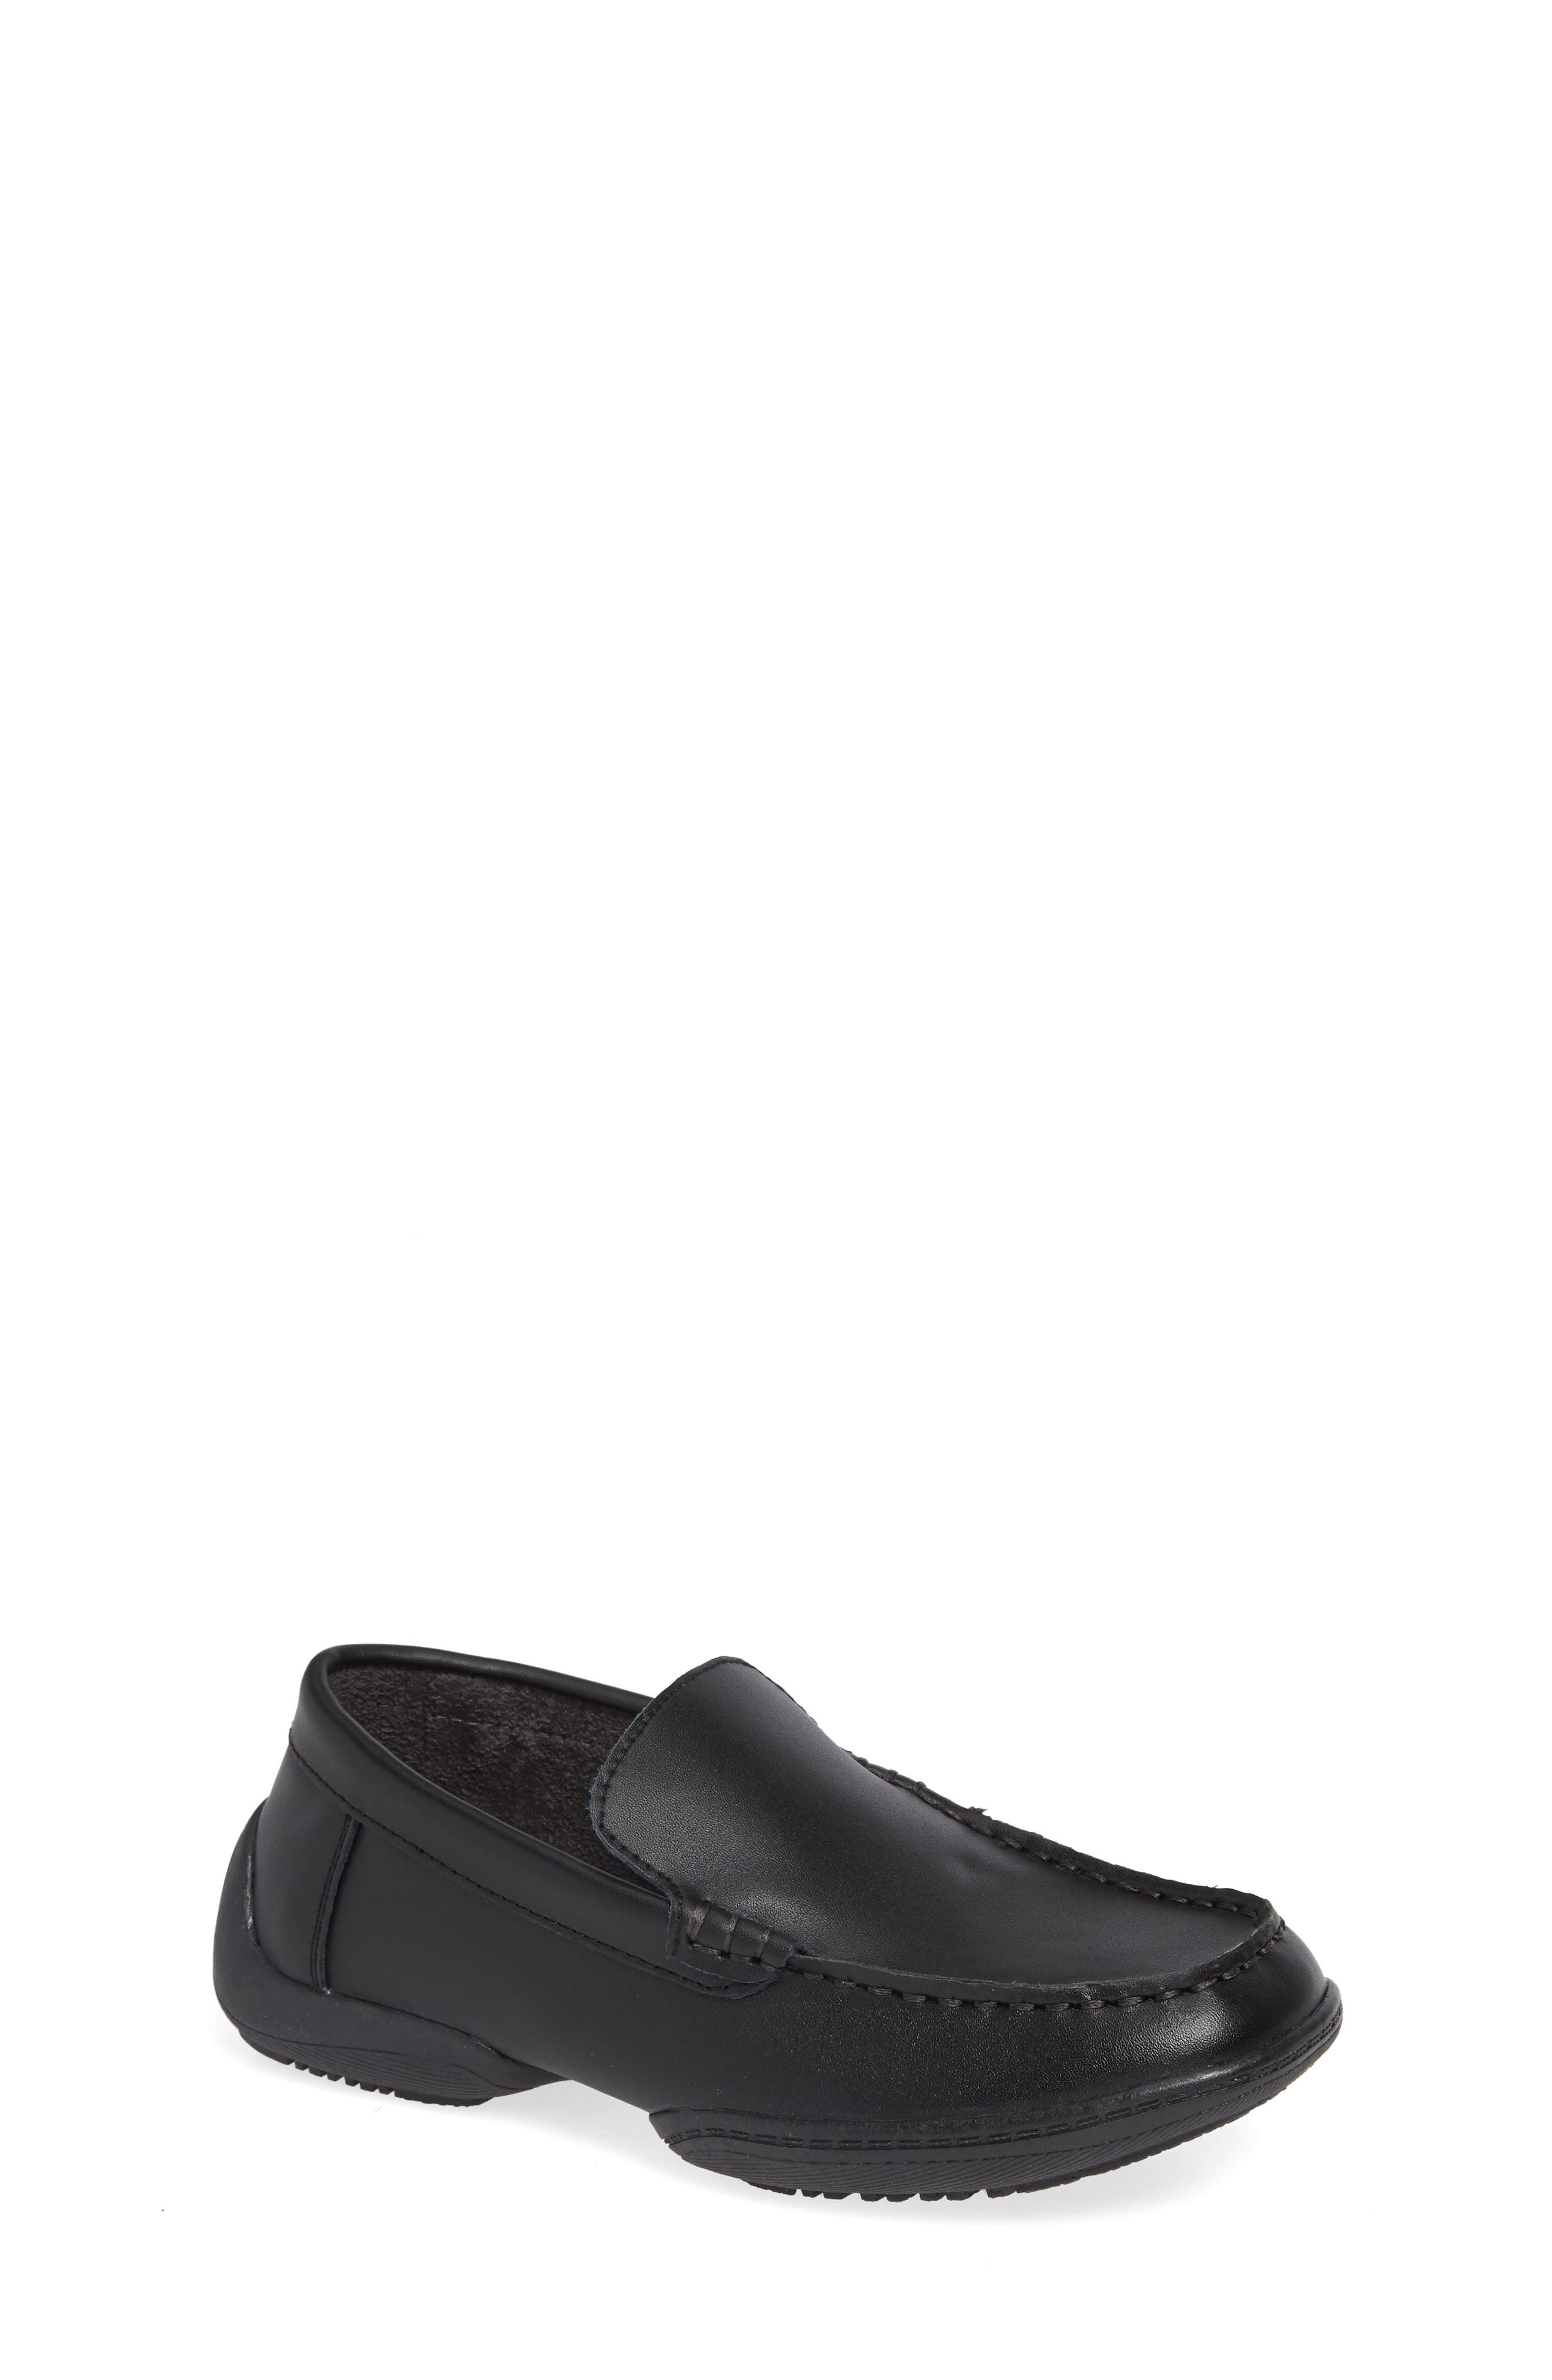 Driving Dime Moccasin,                             Main thumbnail 1, color,                             DARK BLACK LEATHER